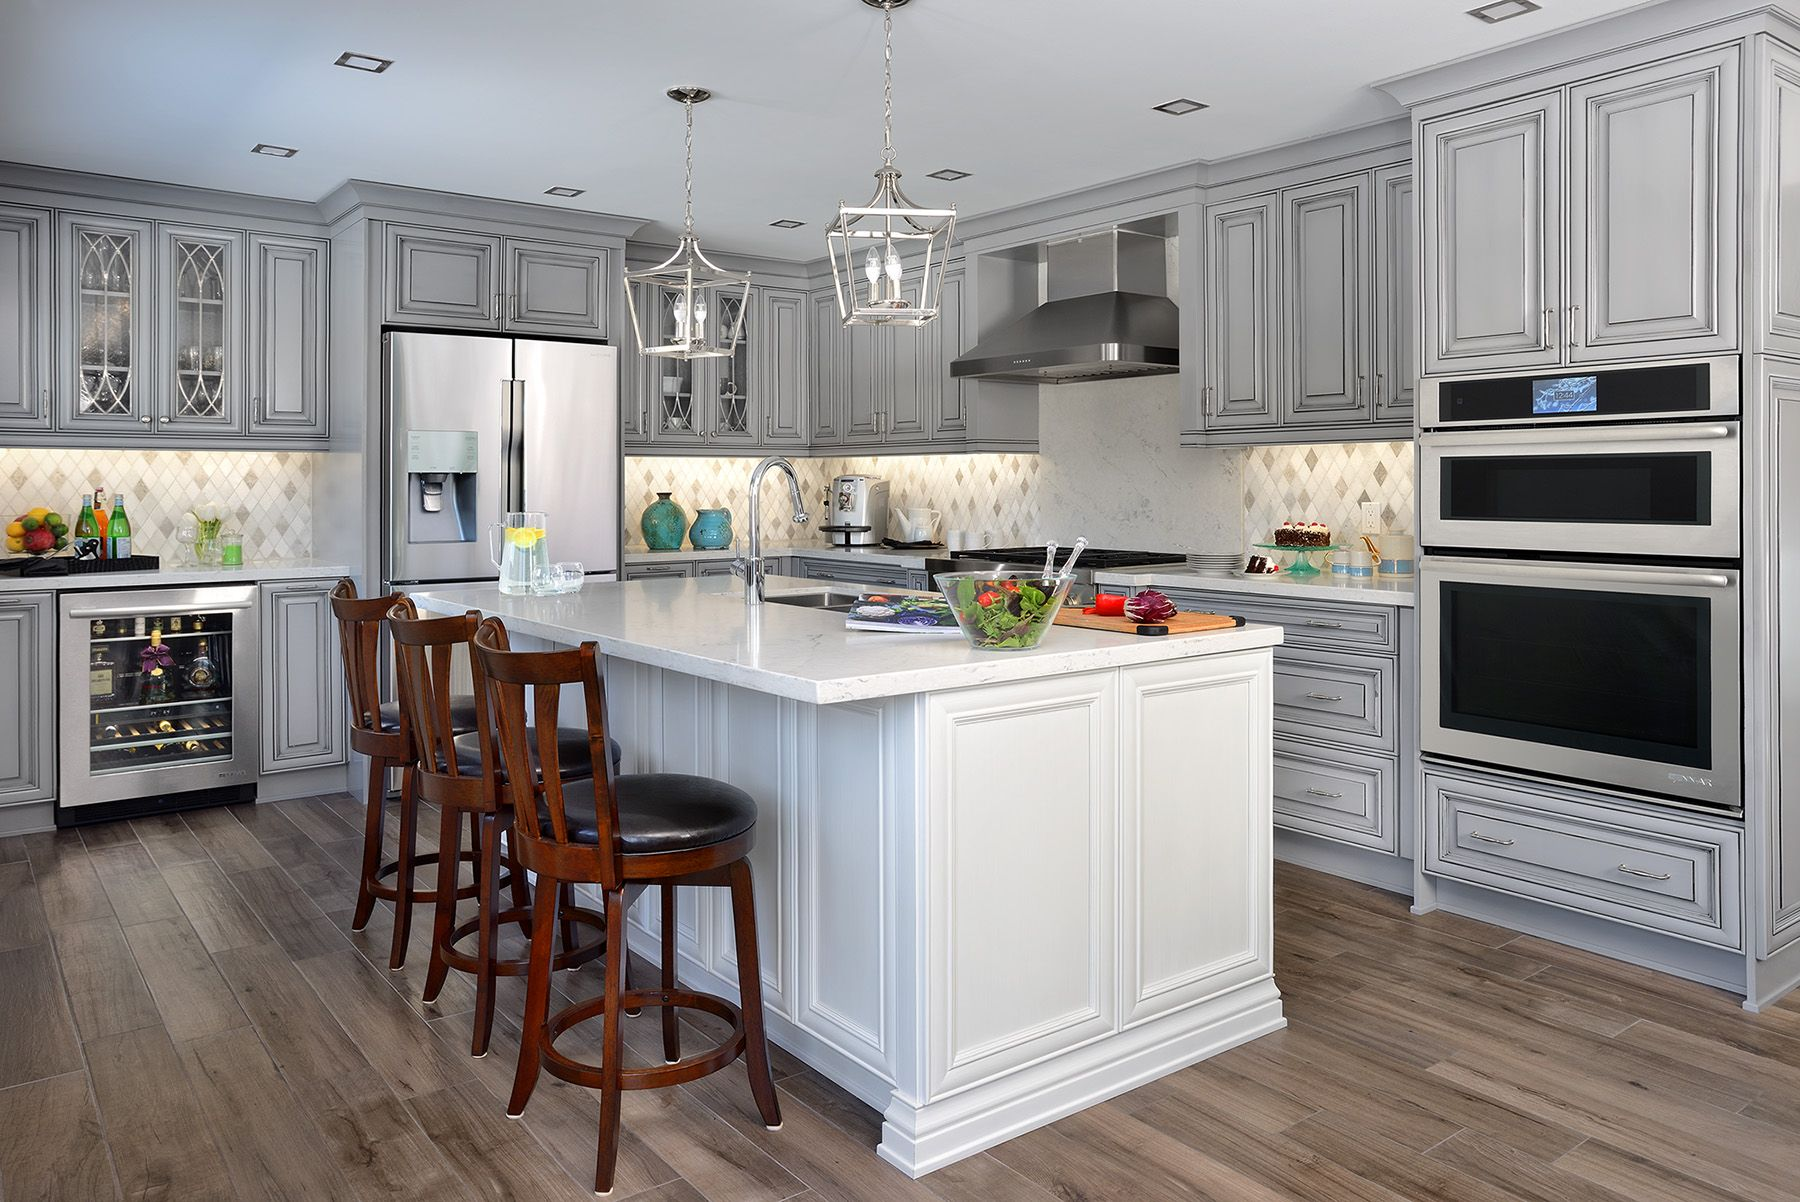 Glacier White Island And Sterling Grey Cabinets Blend Nicely Together Raywalcabinets Kitche Kitchen Remodel Small Kitchen Inspiration Design Kitchen Design